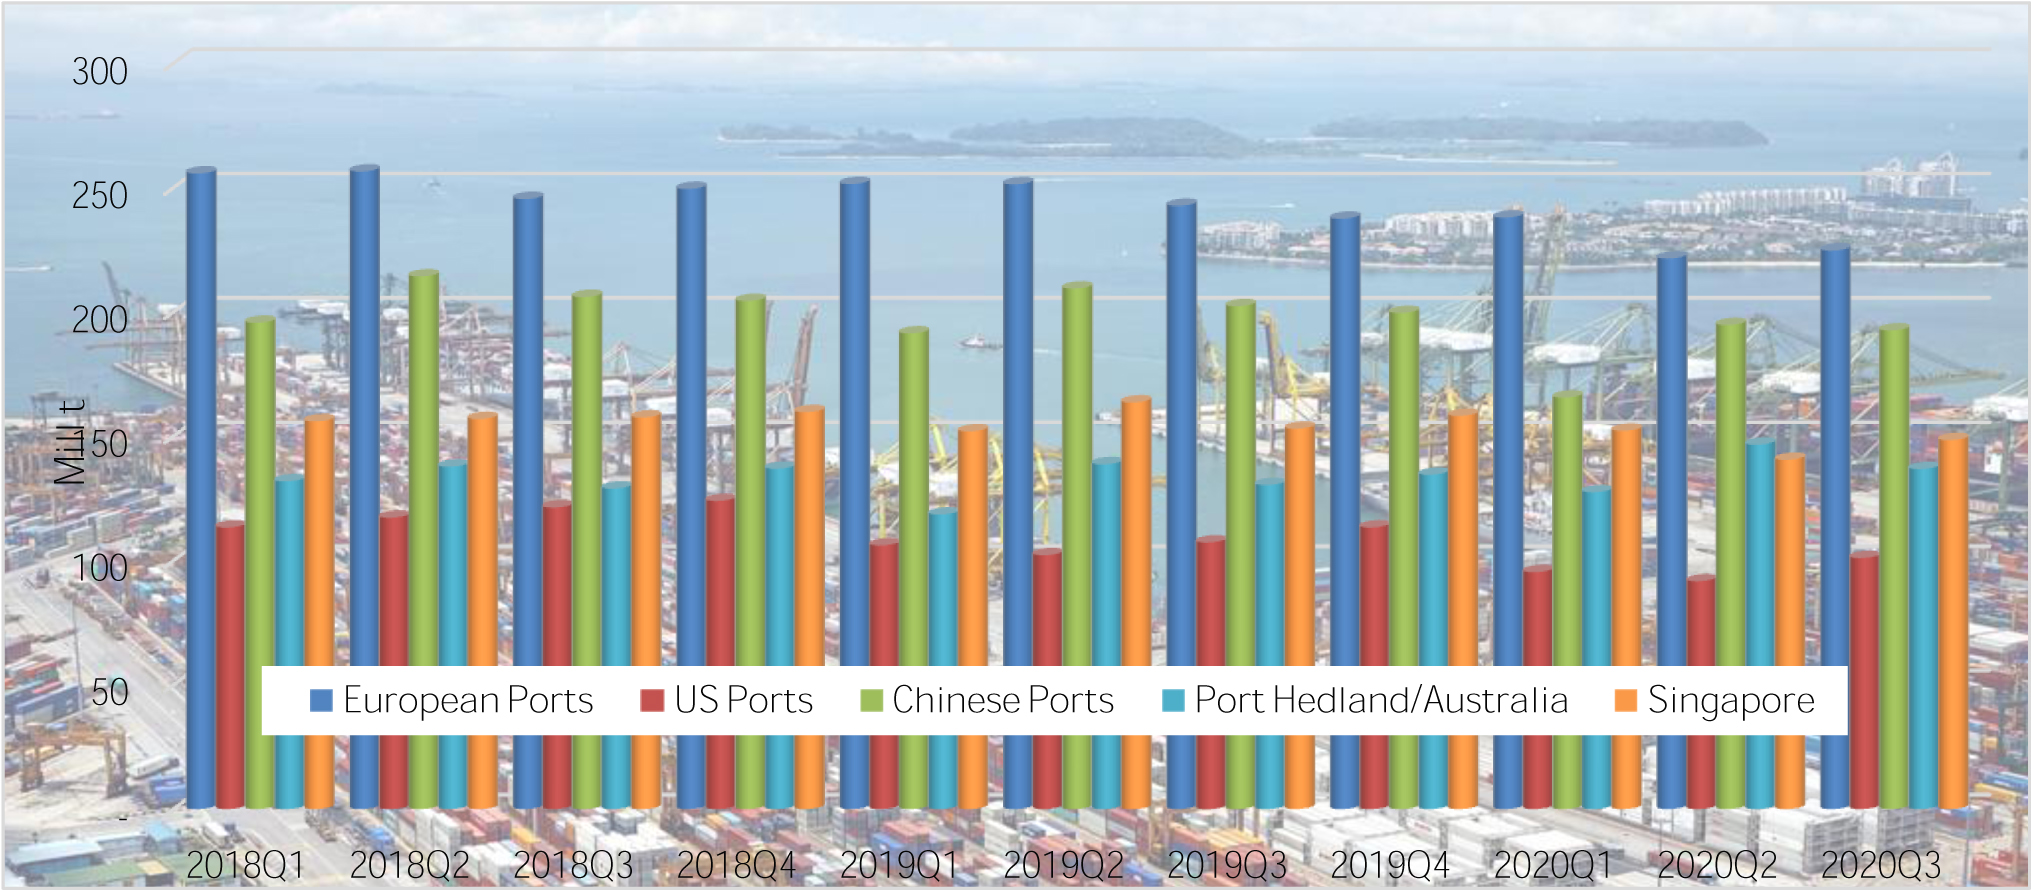 Port handling worldwide burdened by major uncertainties